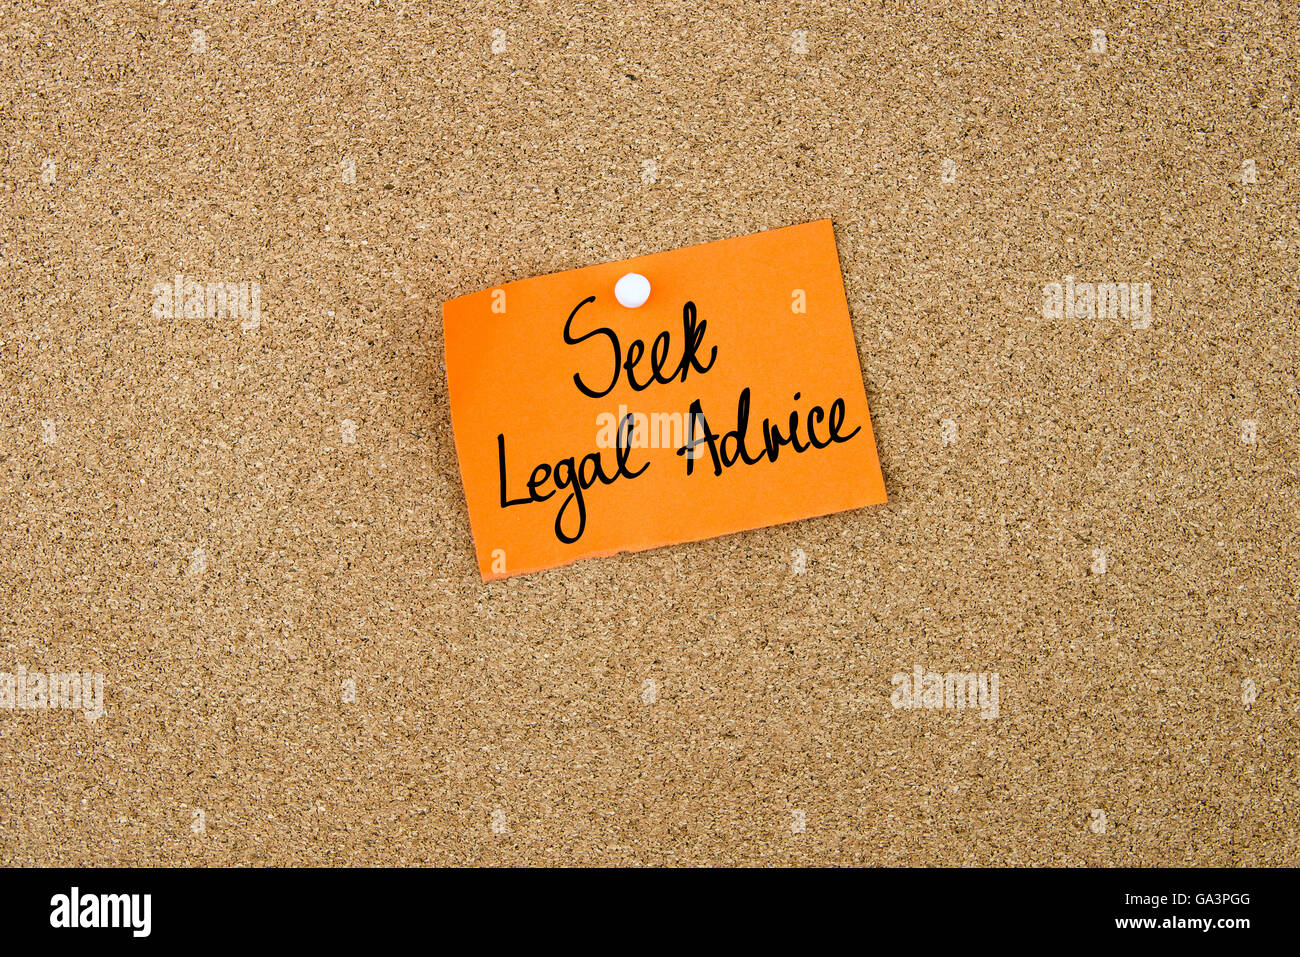 Seek Legal Advice written on orange paper note note pinned on cork board with white thumbtack, copy space available - Stock Image